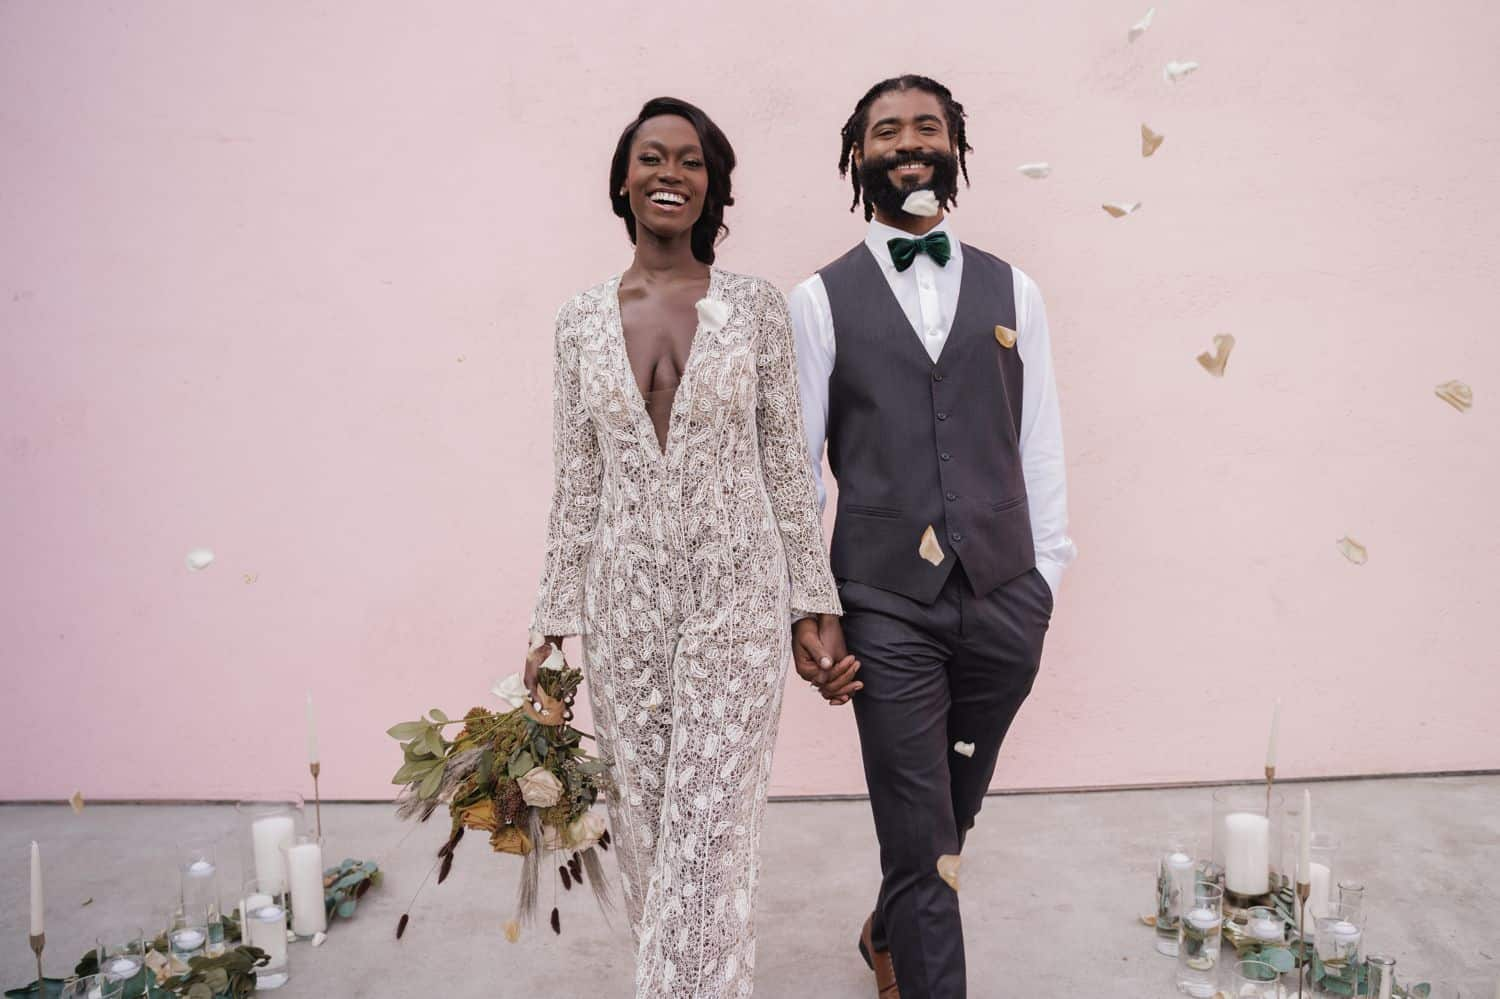 A bride in lace jumpsuit walks in front of a pink wall with her groom who is wearing a gray suit. They are in a shower of flower petals.